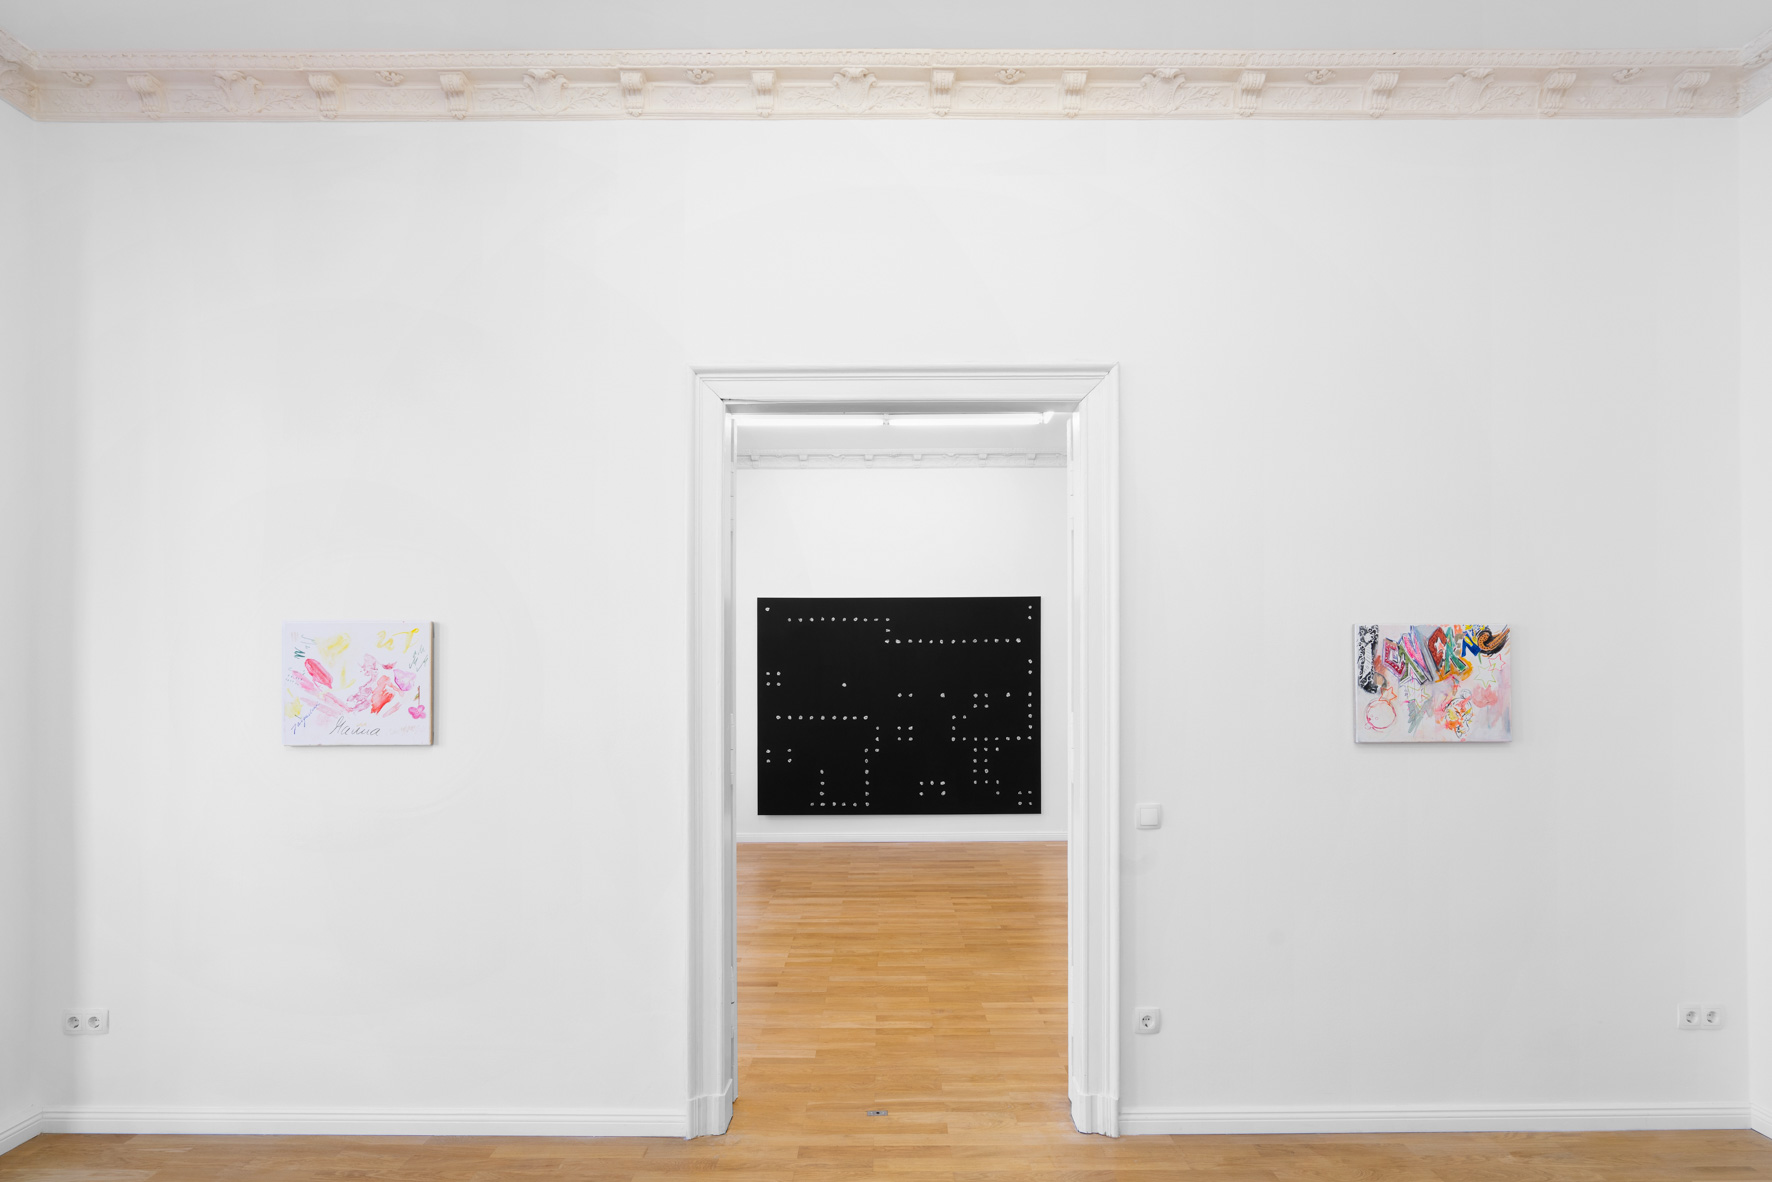 Installation view,  Cecilia  Left to right: Sofia Leiby,  Jacqueline (Creative World I) , 2019; Jeff Zilm,  An Anti-algorithmic Painting in Memory of Jack Burnham , 2019; Sofia Leiby,  Mont Marte (Creative World II) , 2019